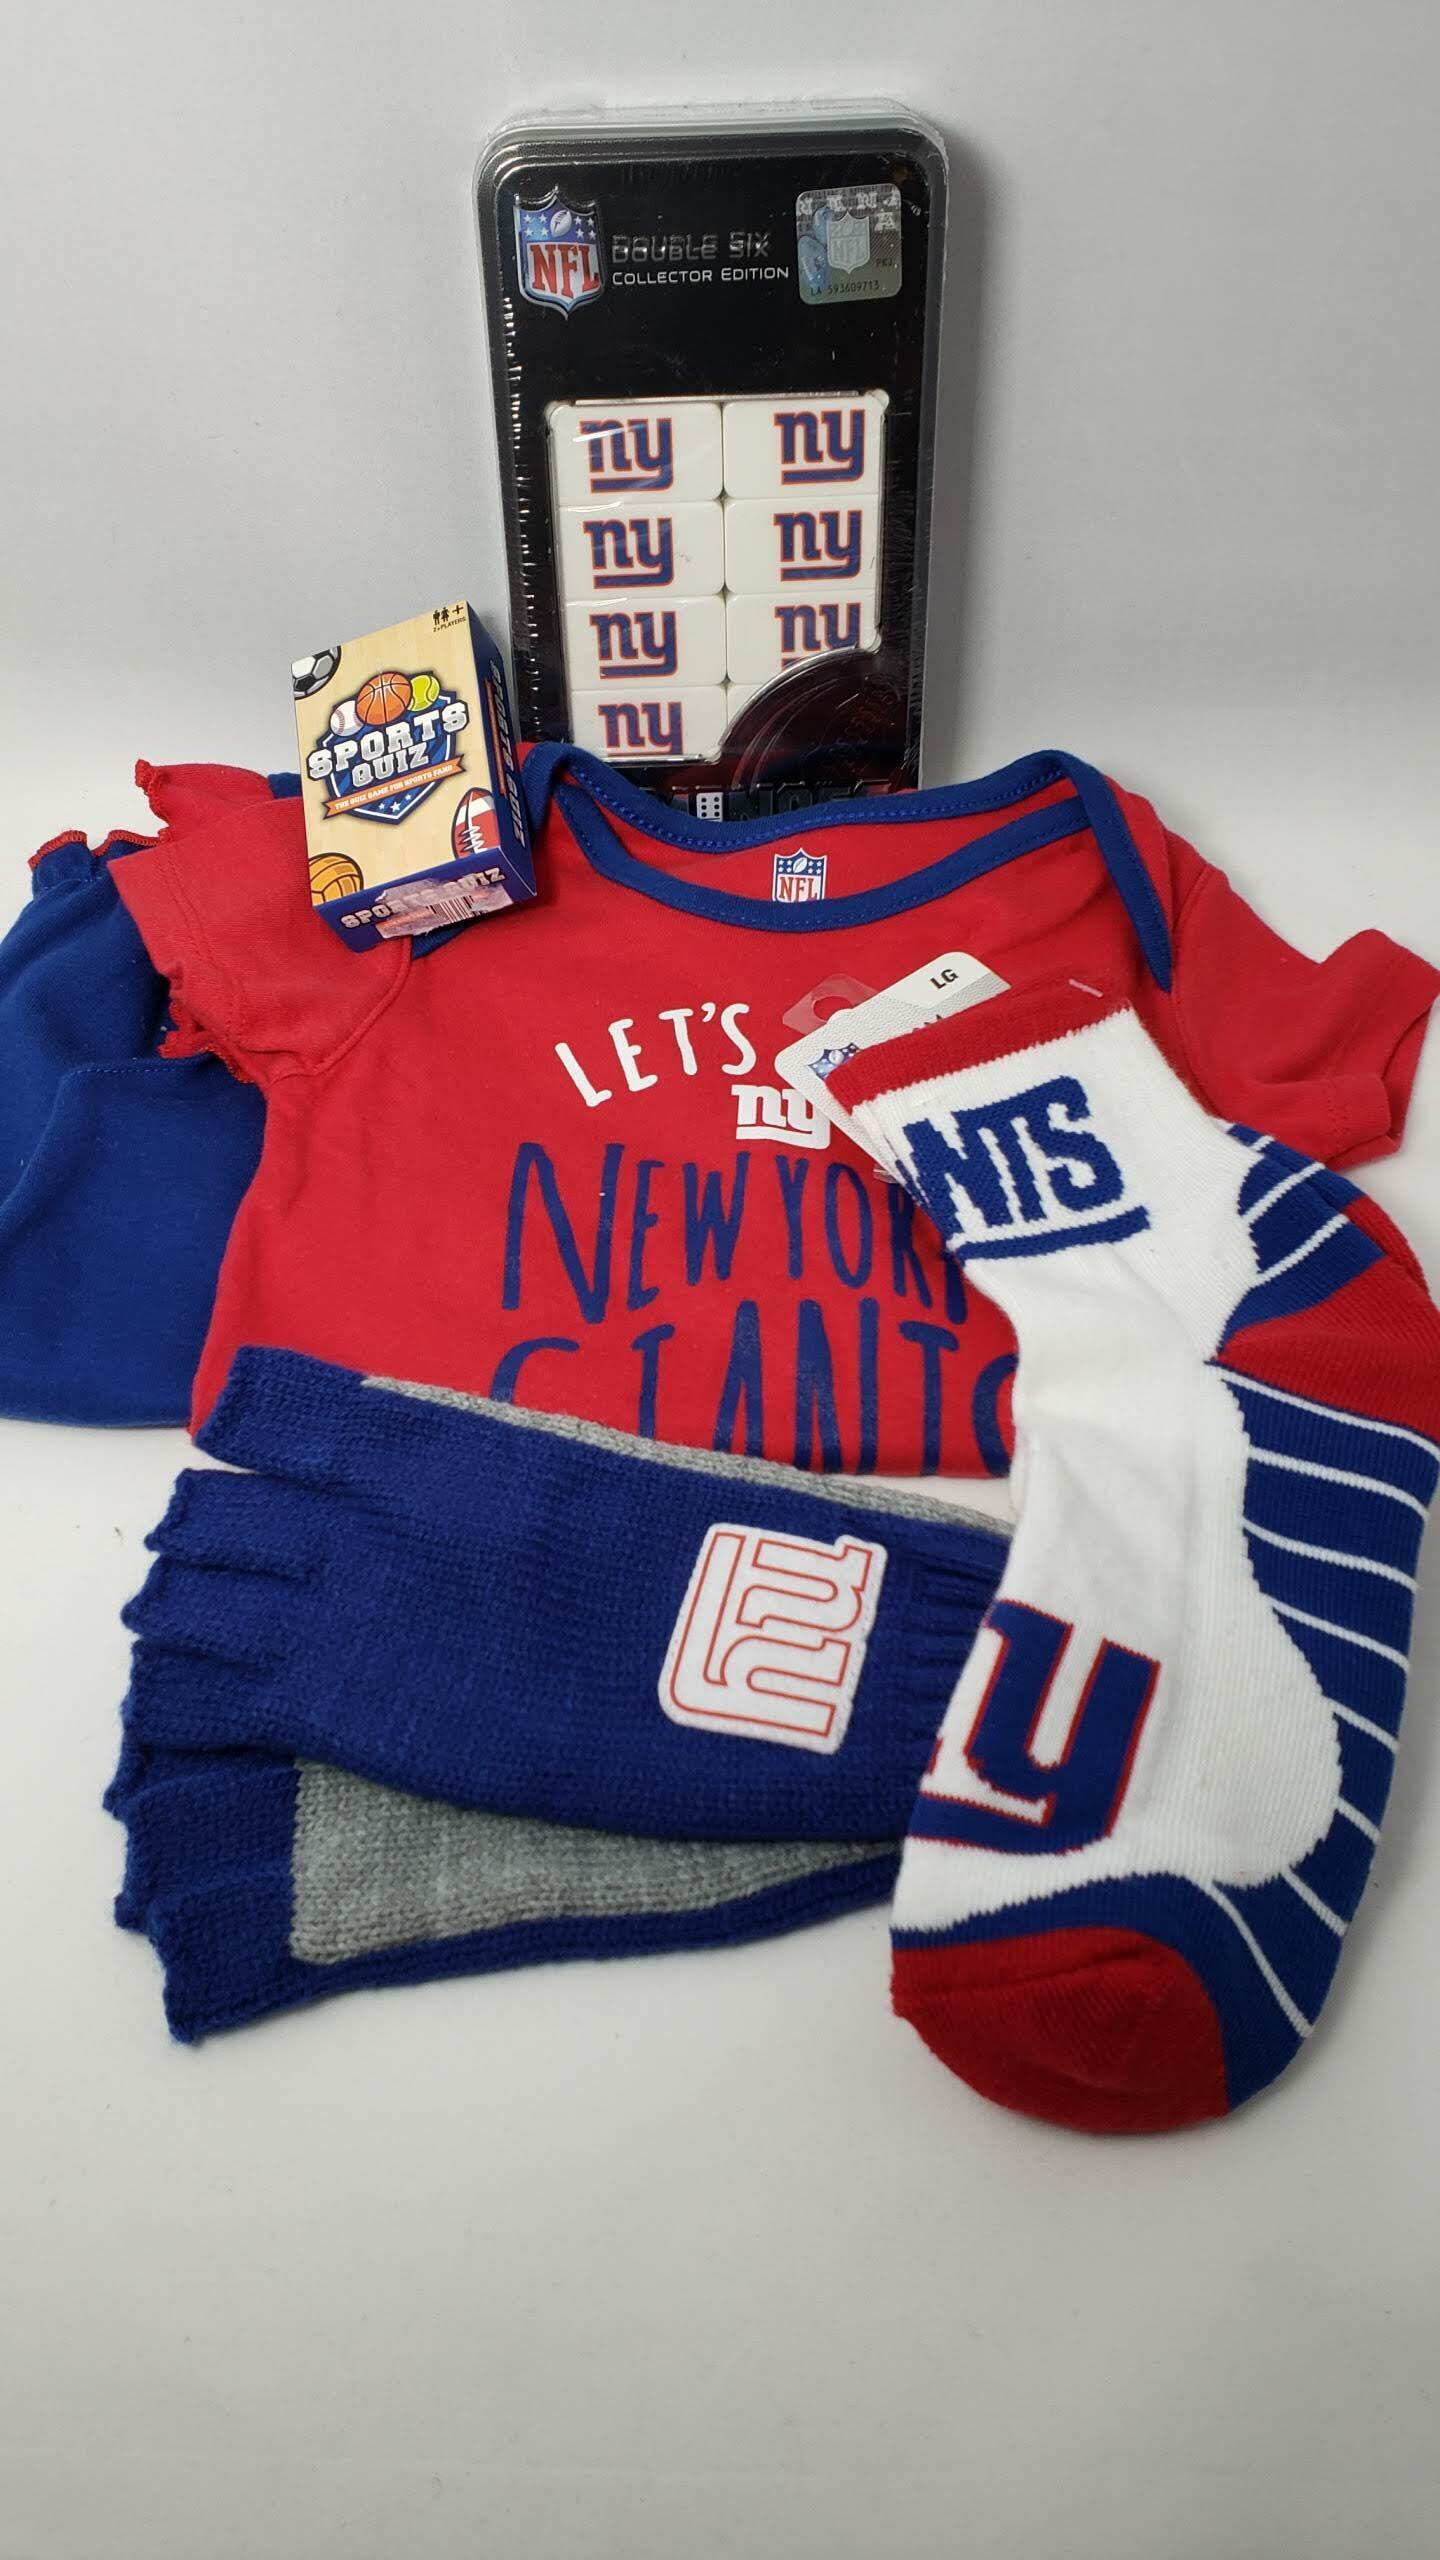 Ny Giants Family Gift Pack Personally Thoughtful